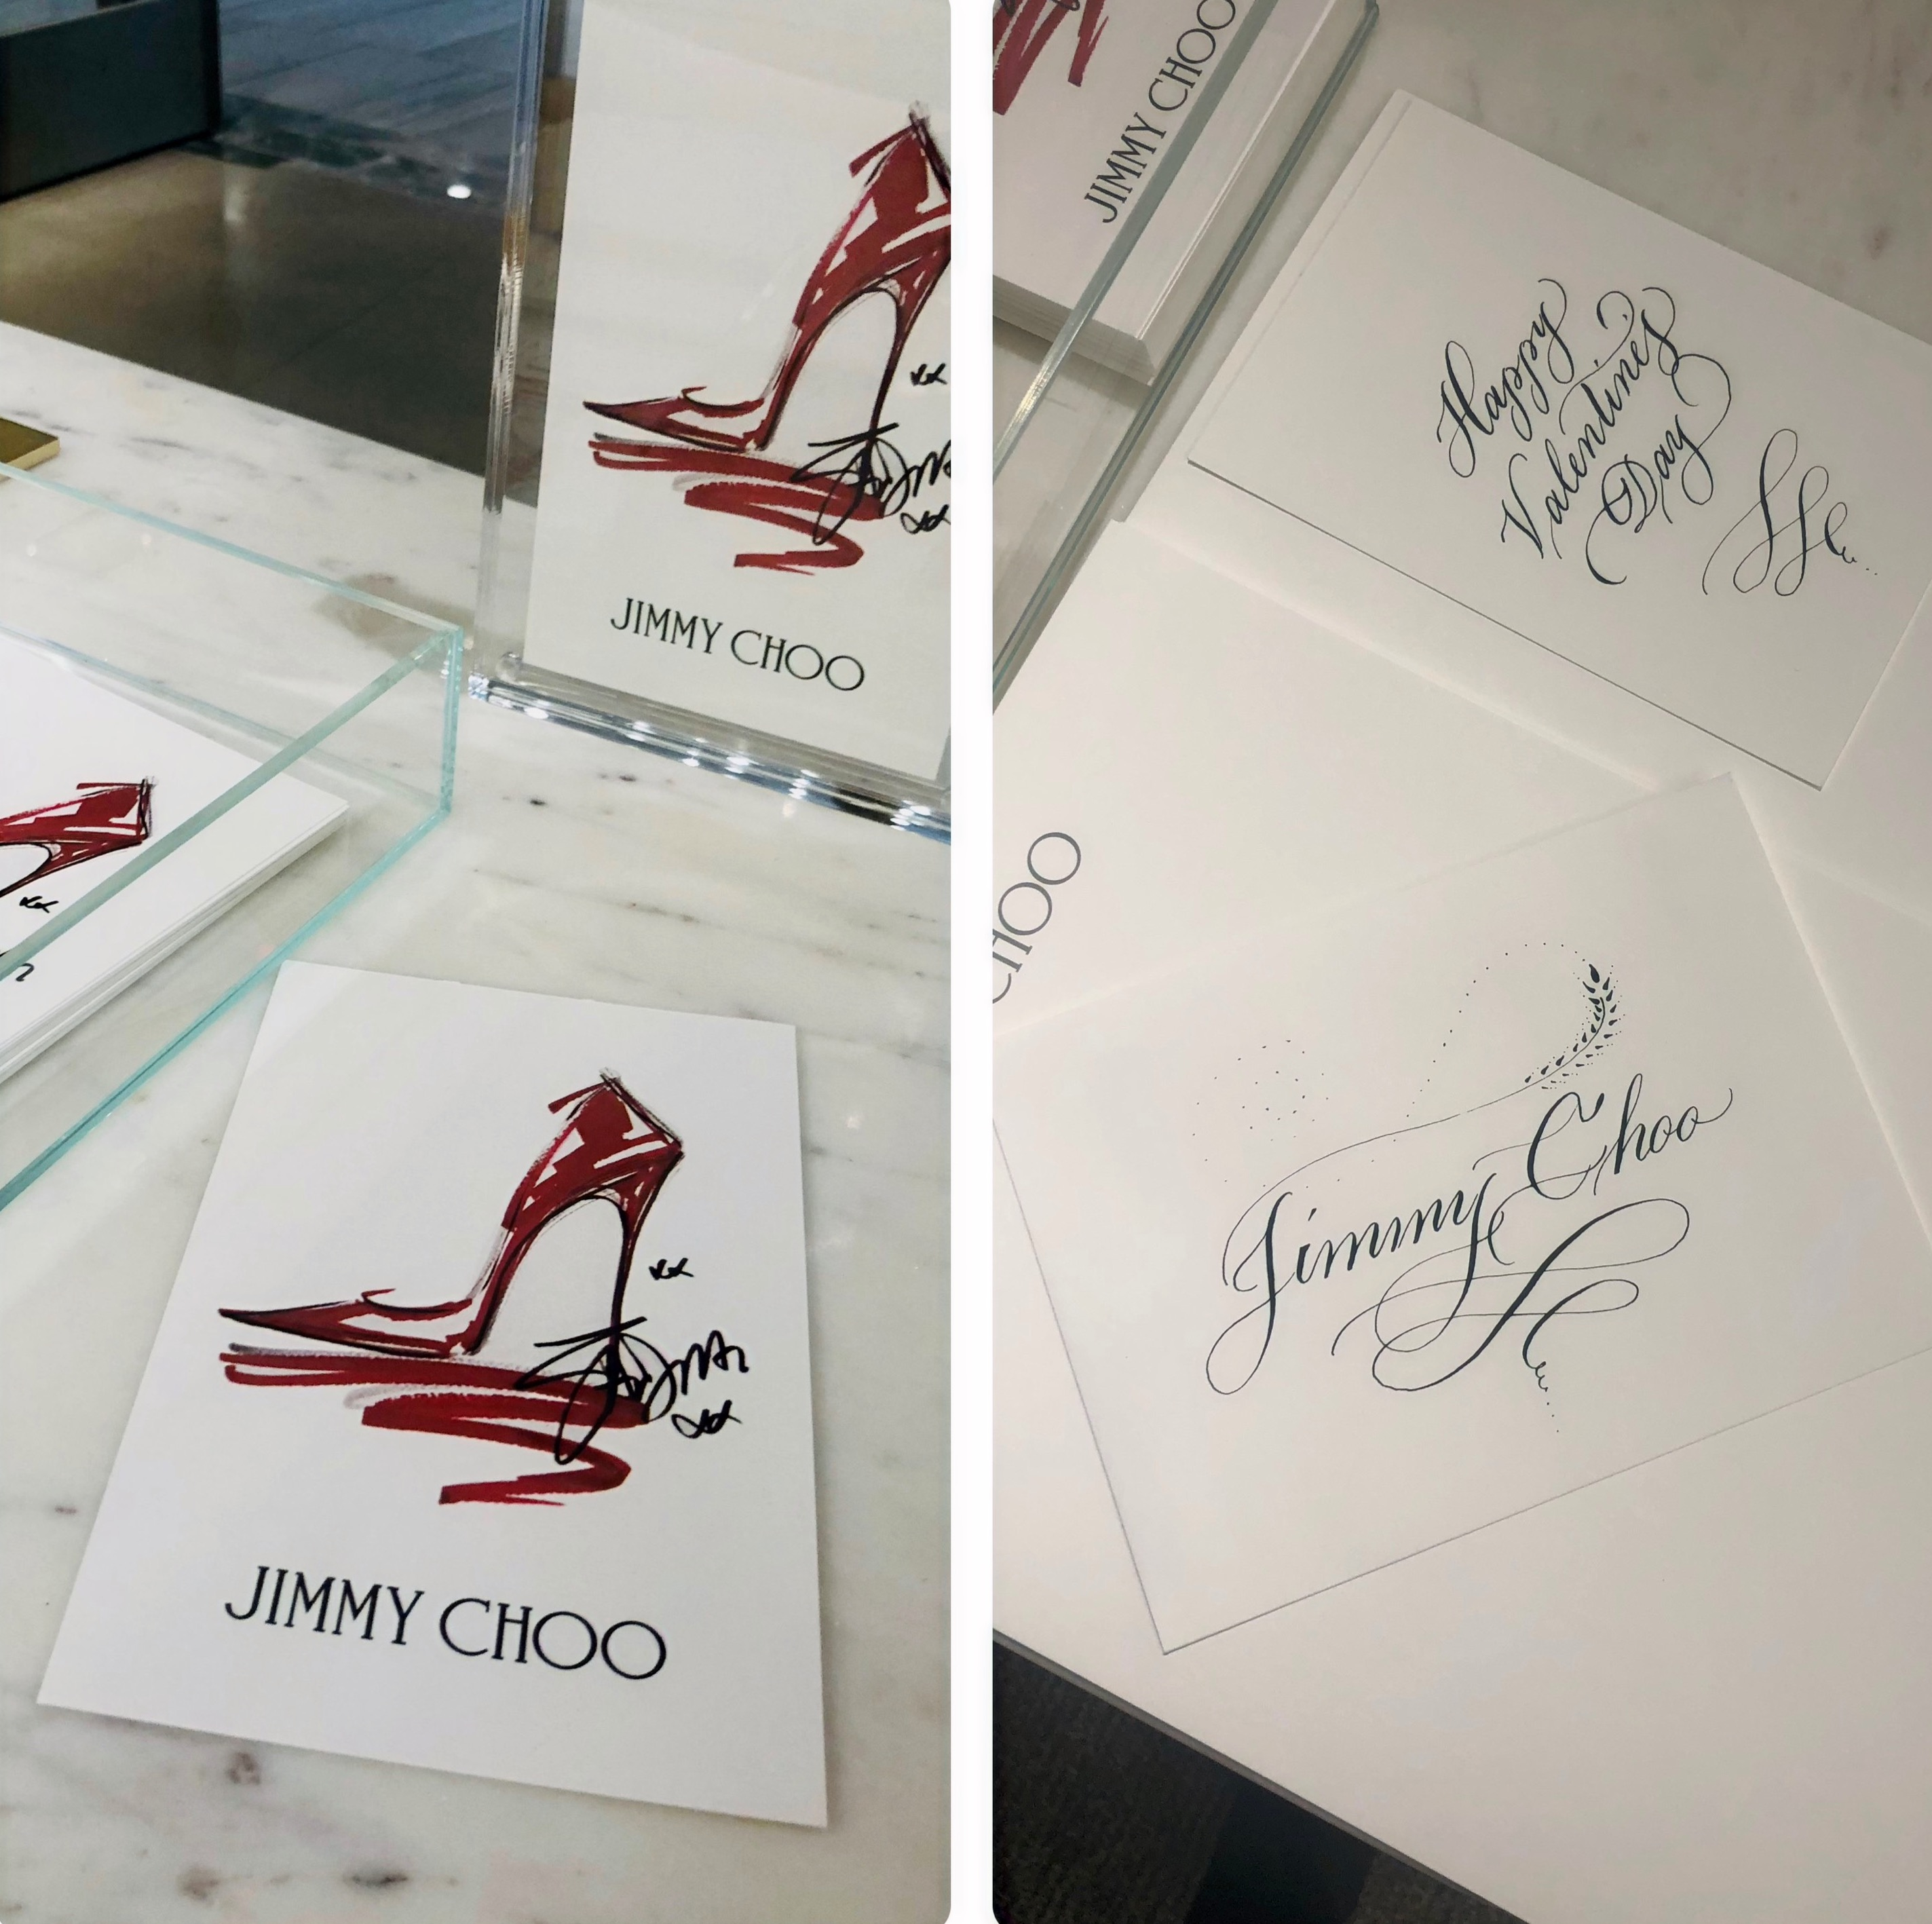 February 2021 Jimmy Choo In-Store event